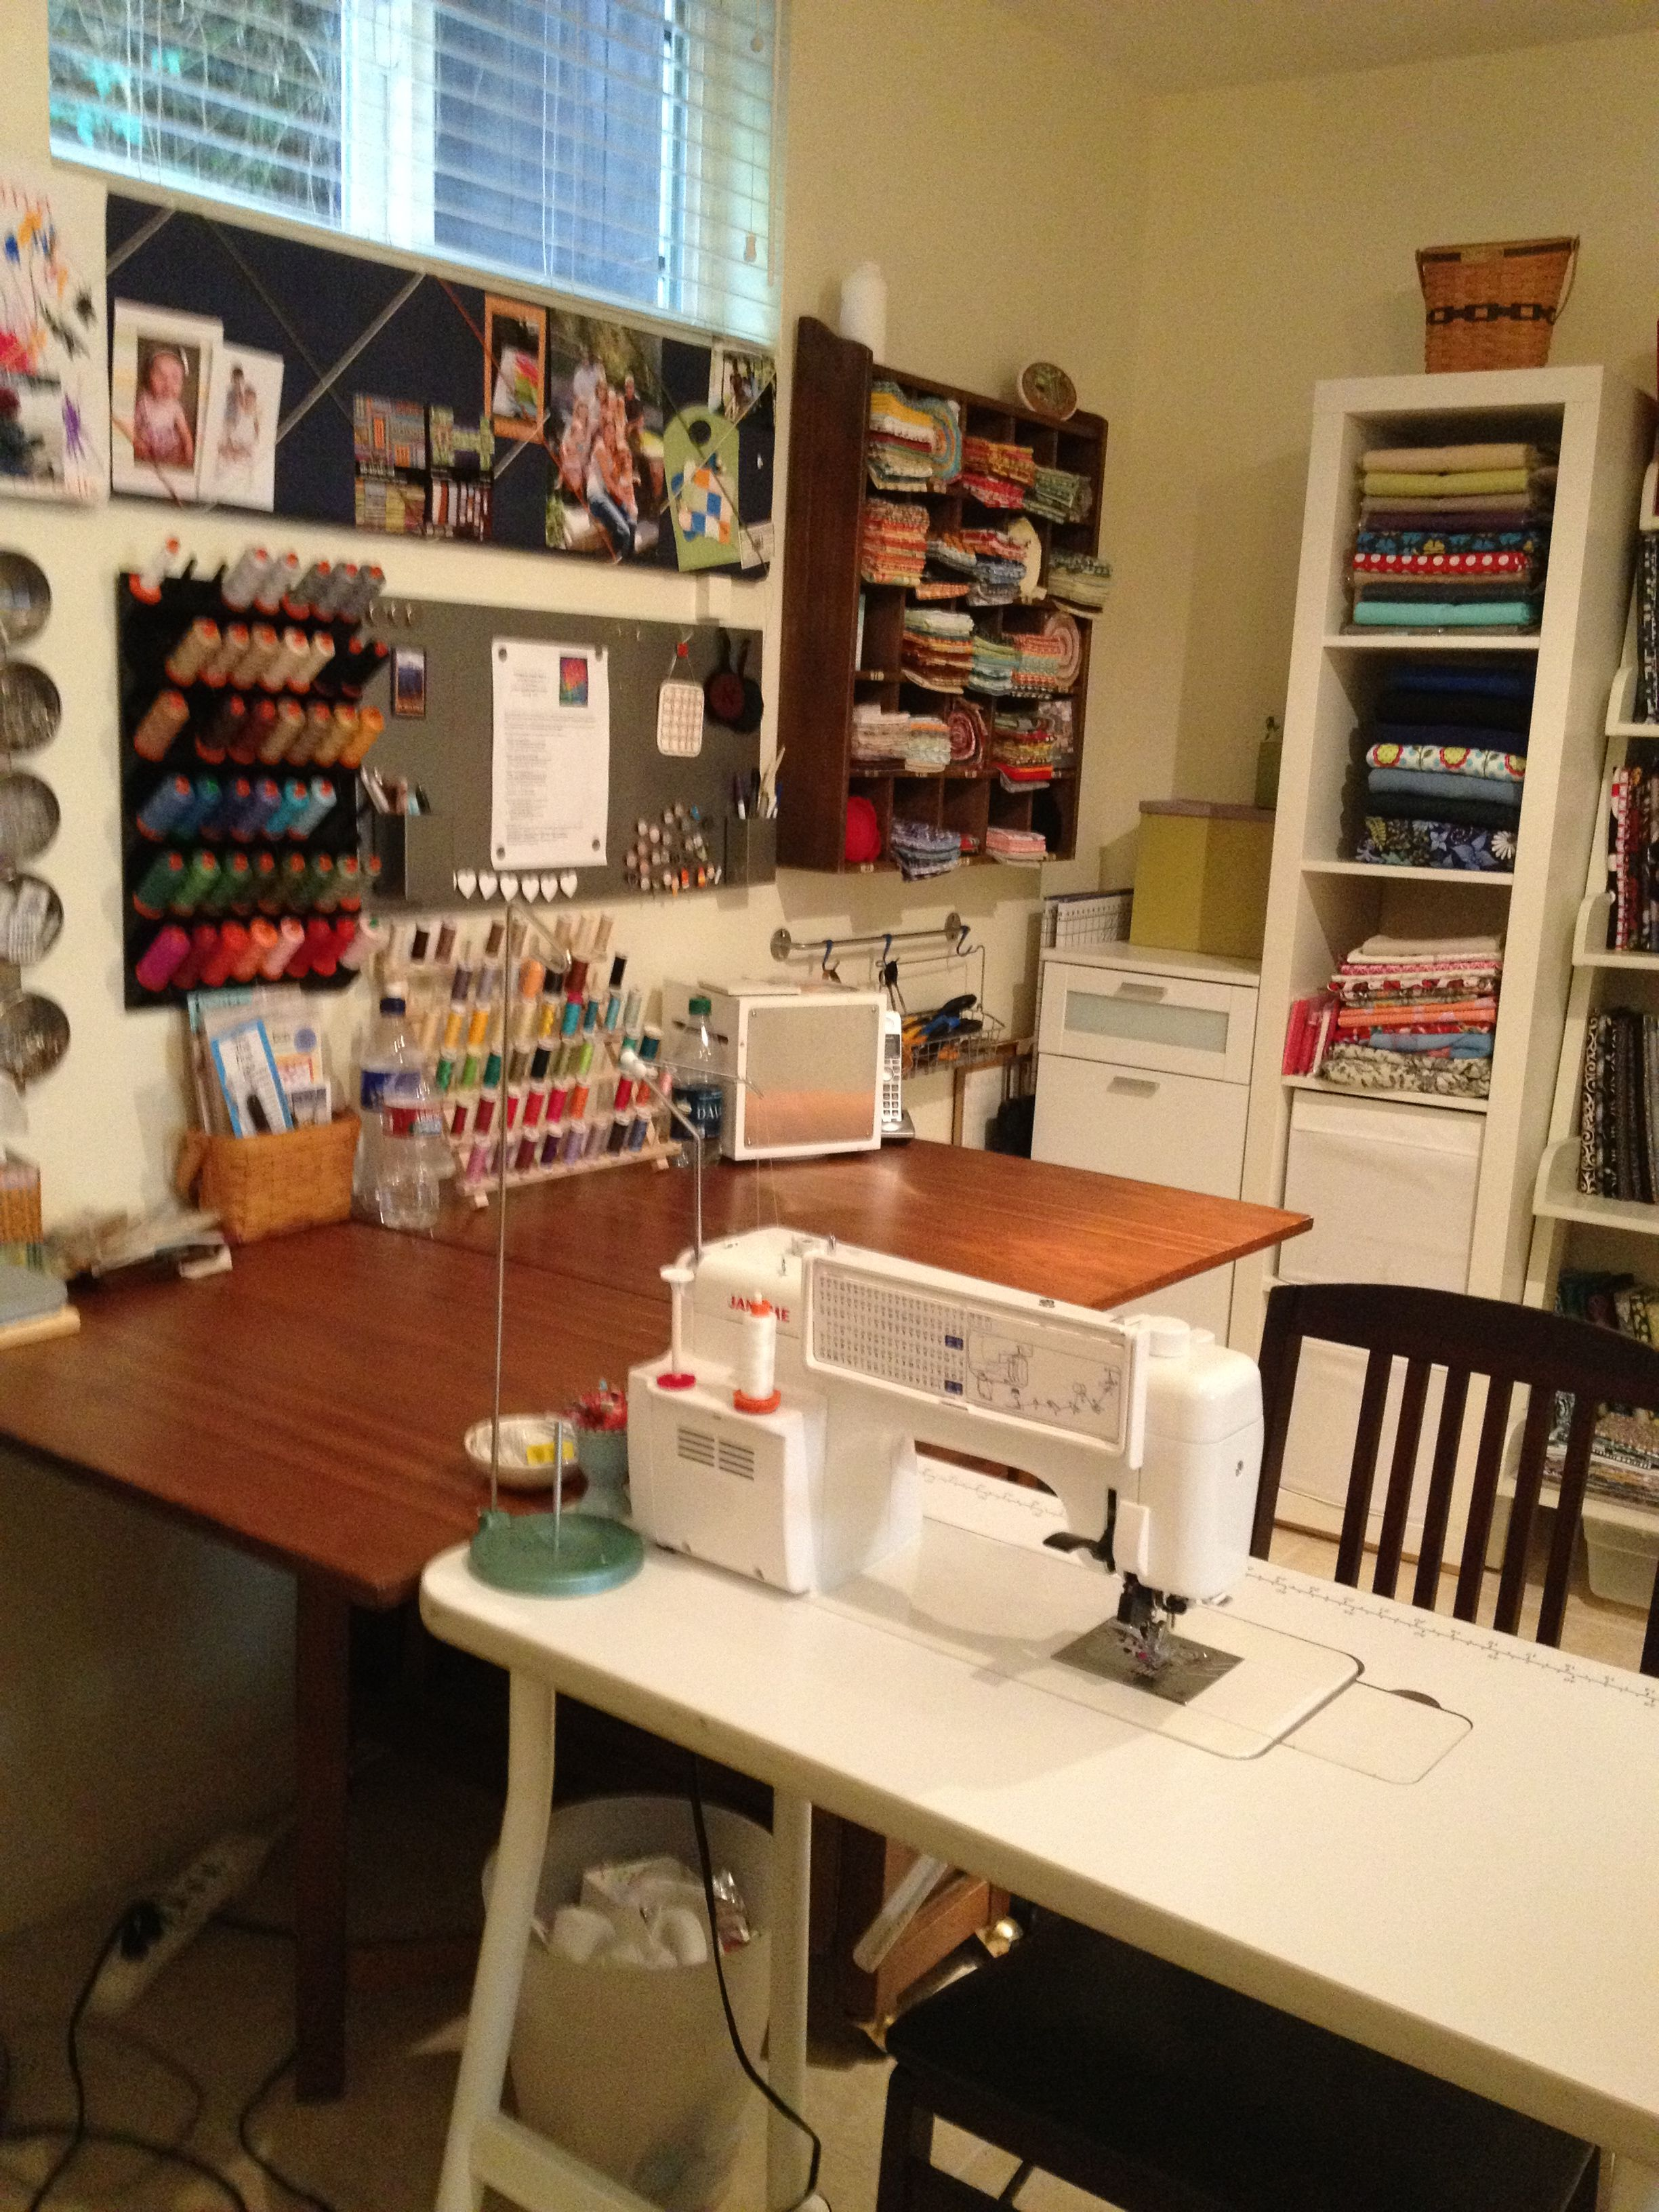 IKEA Sewing Room Ideas | Sewing Room of the Month - Art Gallery ...